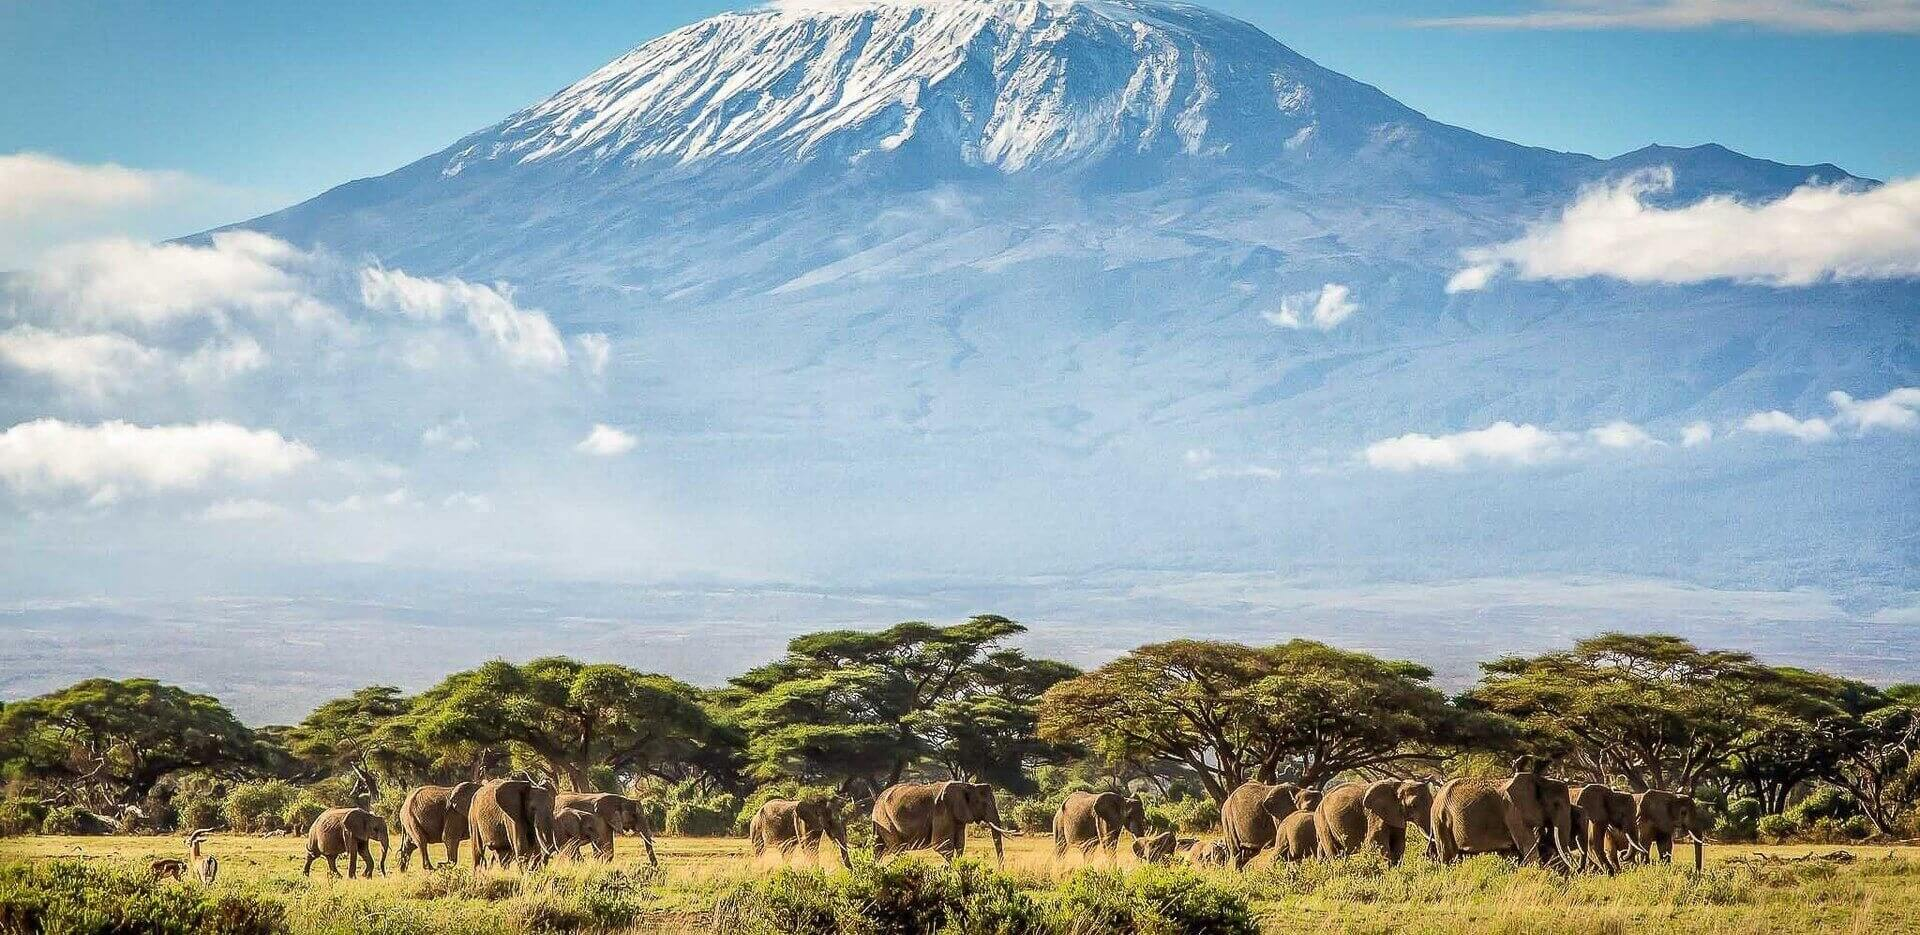 Tanzania with Mount Kilimanjaro in the background